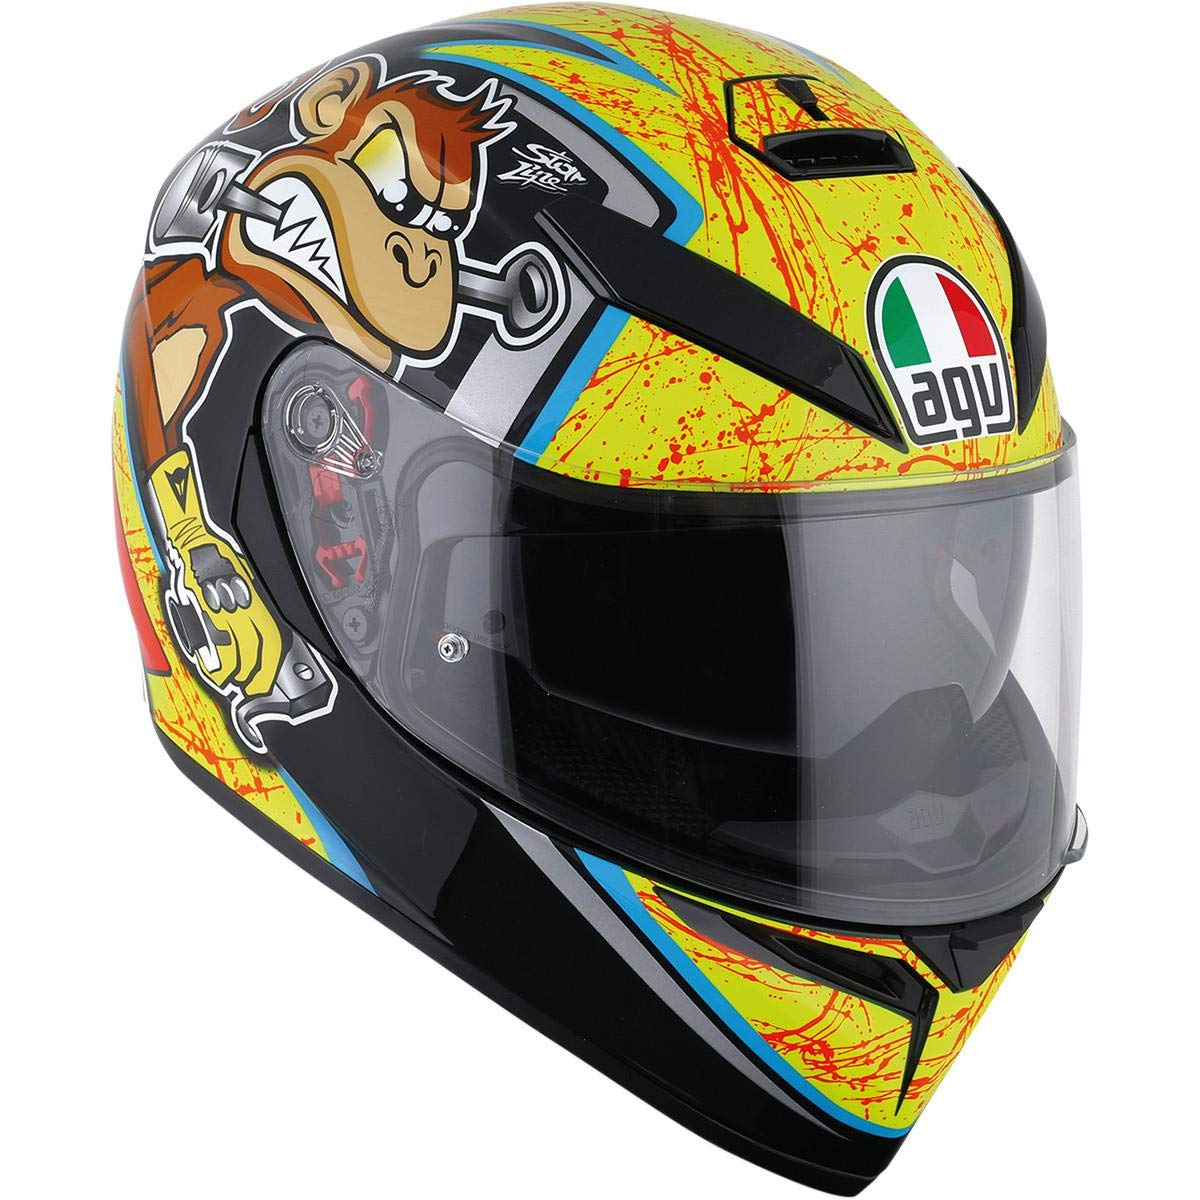 DOT-Approved AGV K3 SV Bulega Motorcycle Helmet XS